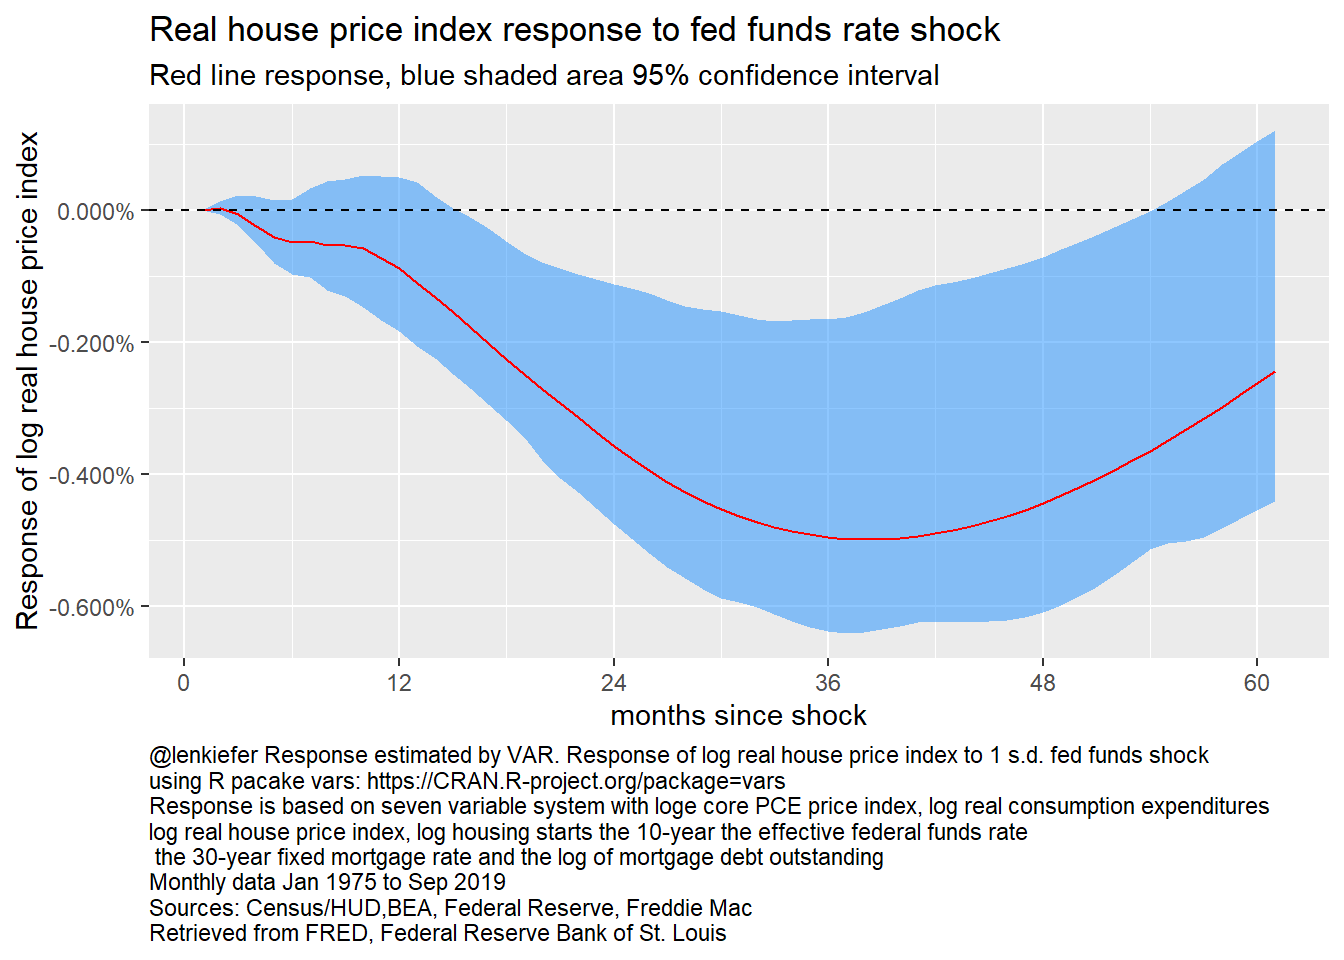 Response of log real house price index to fed funds rate, 7 variable VAR